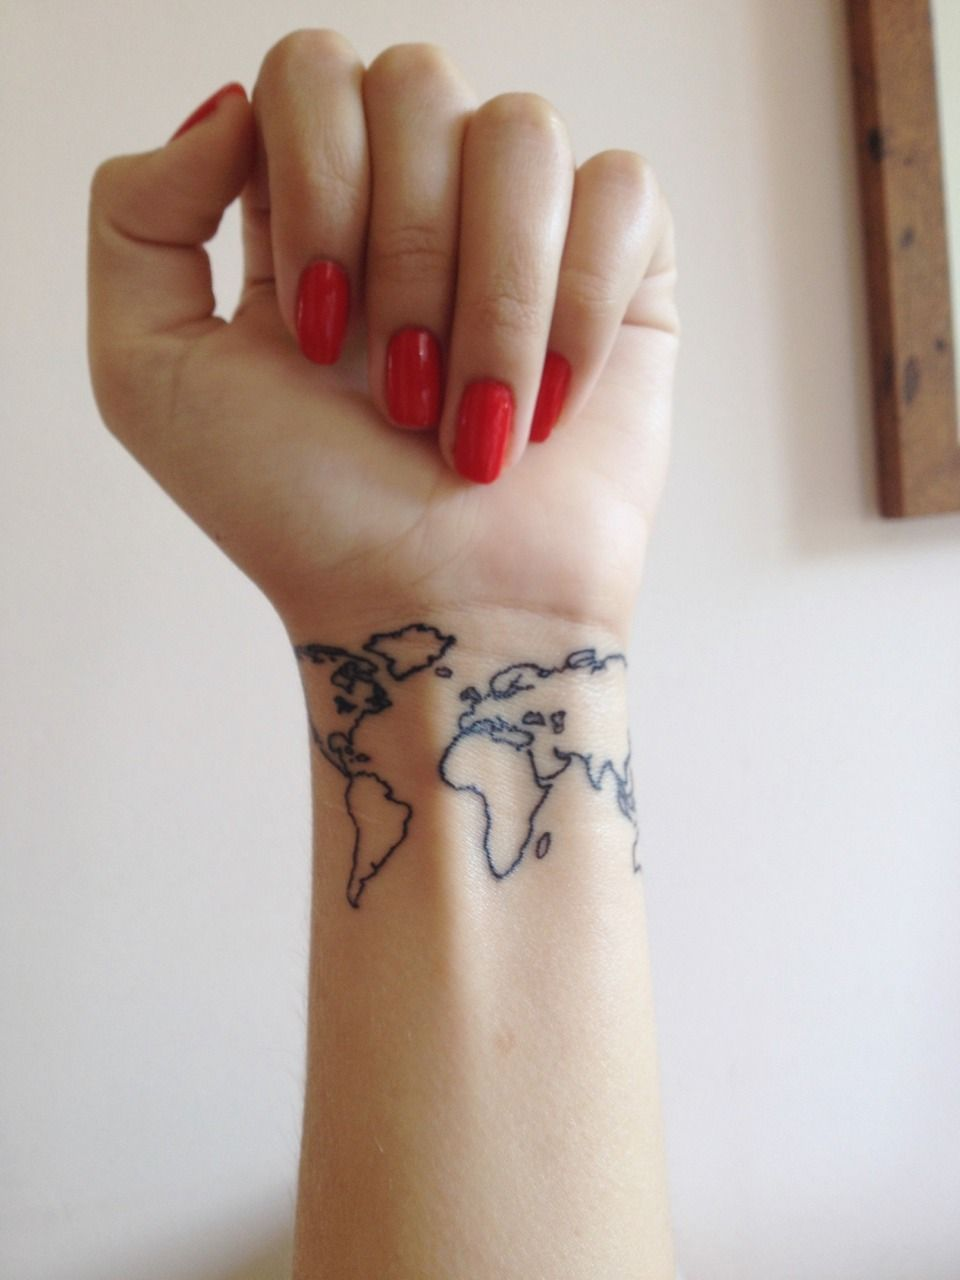 65 totally inspiring ideas for wrist tattoos tattoo map tattoos 65 totally inspiring ideas for wrist tattoos worldmapworld gumiabroncs Image collections